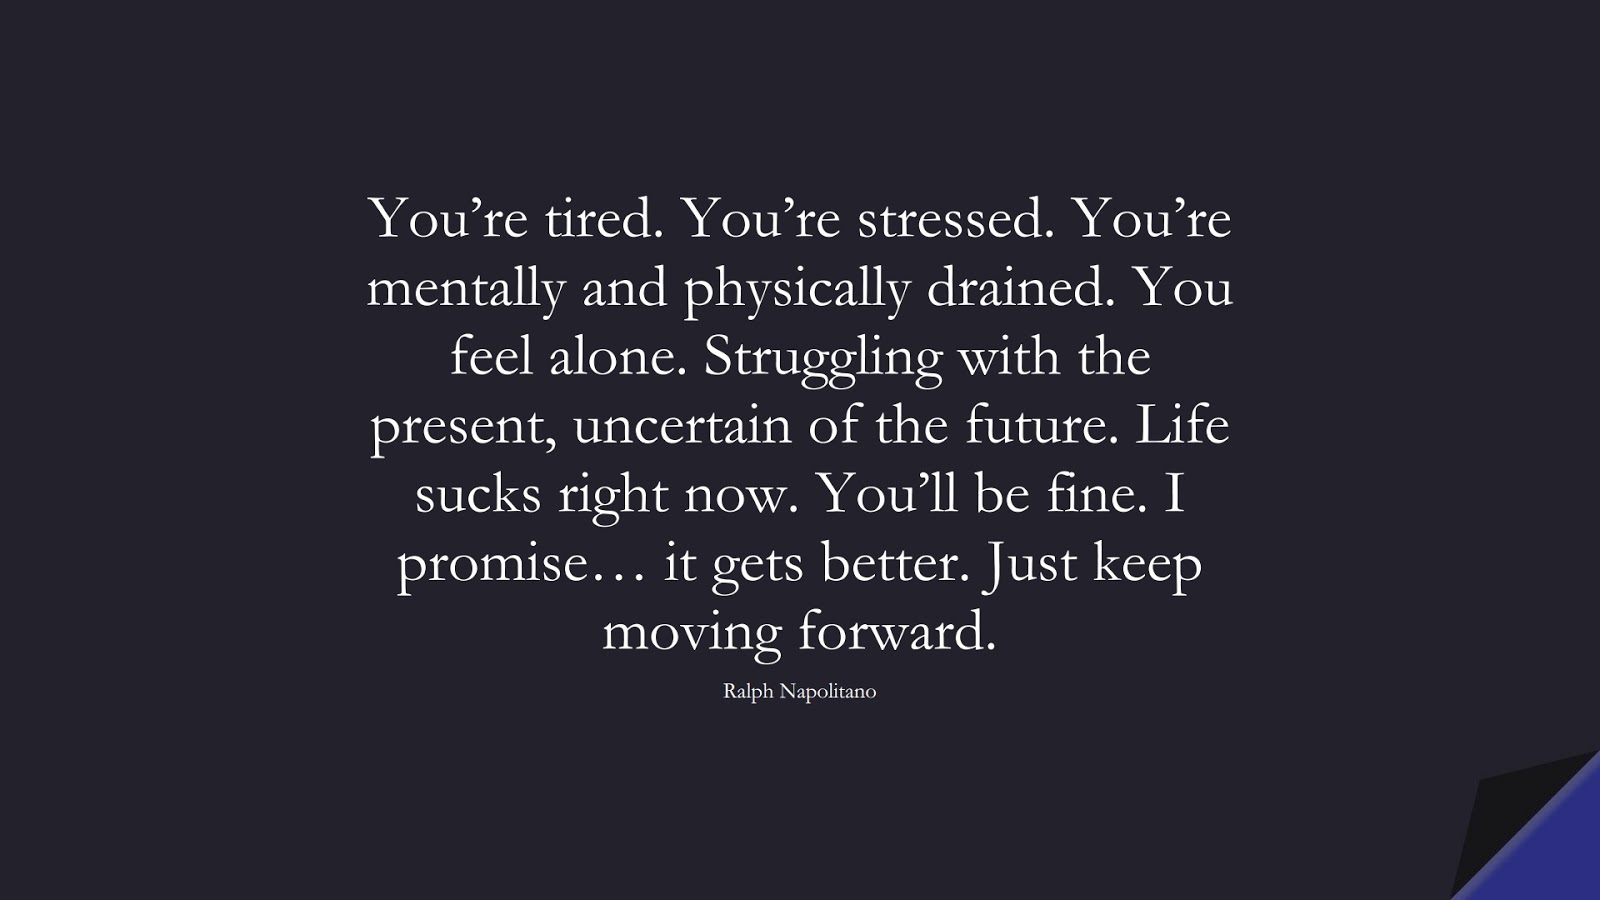 You're tired. You're stressed. You're mentally and physically drained. You feel alone. Struggling with the present, uncertain of the future. Life sucks right now. You'll be fine. I promise… it gets better. Just keep moving forward. (Ralph Napolitano);  #EncouragingQuotes